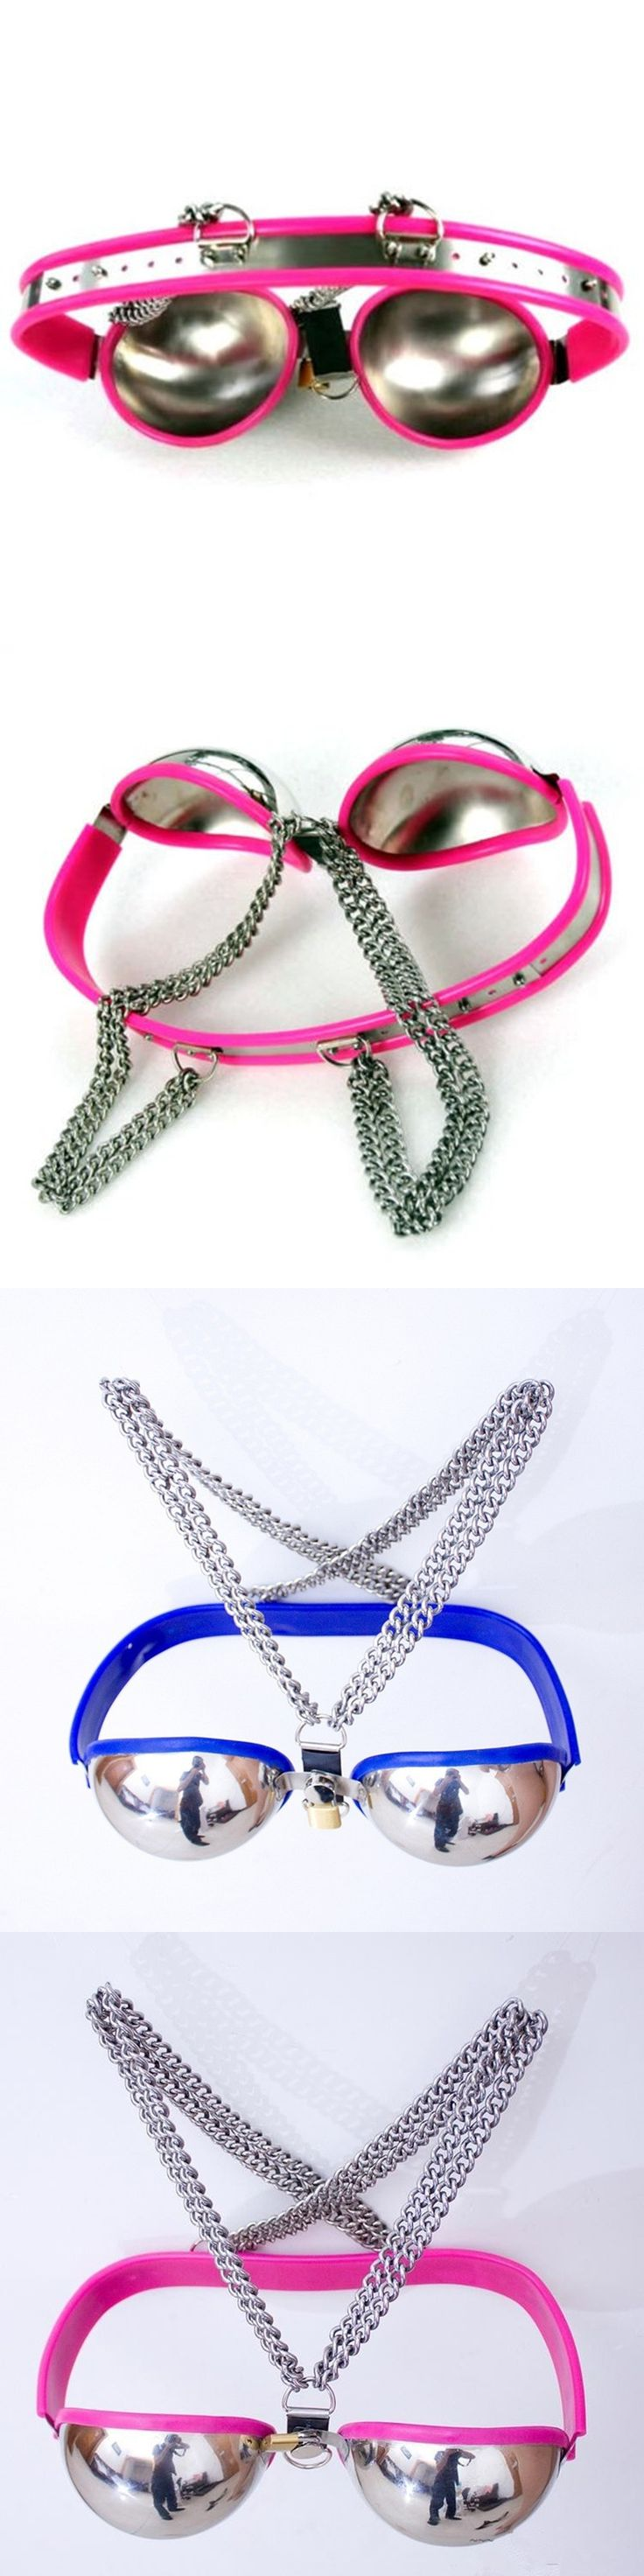 NEW adjustable stainless steel female chastity belt metal bra sex chain bondage restraints adult sex toys for woman sex products